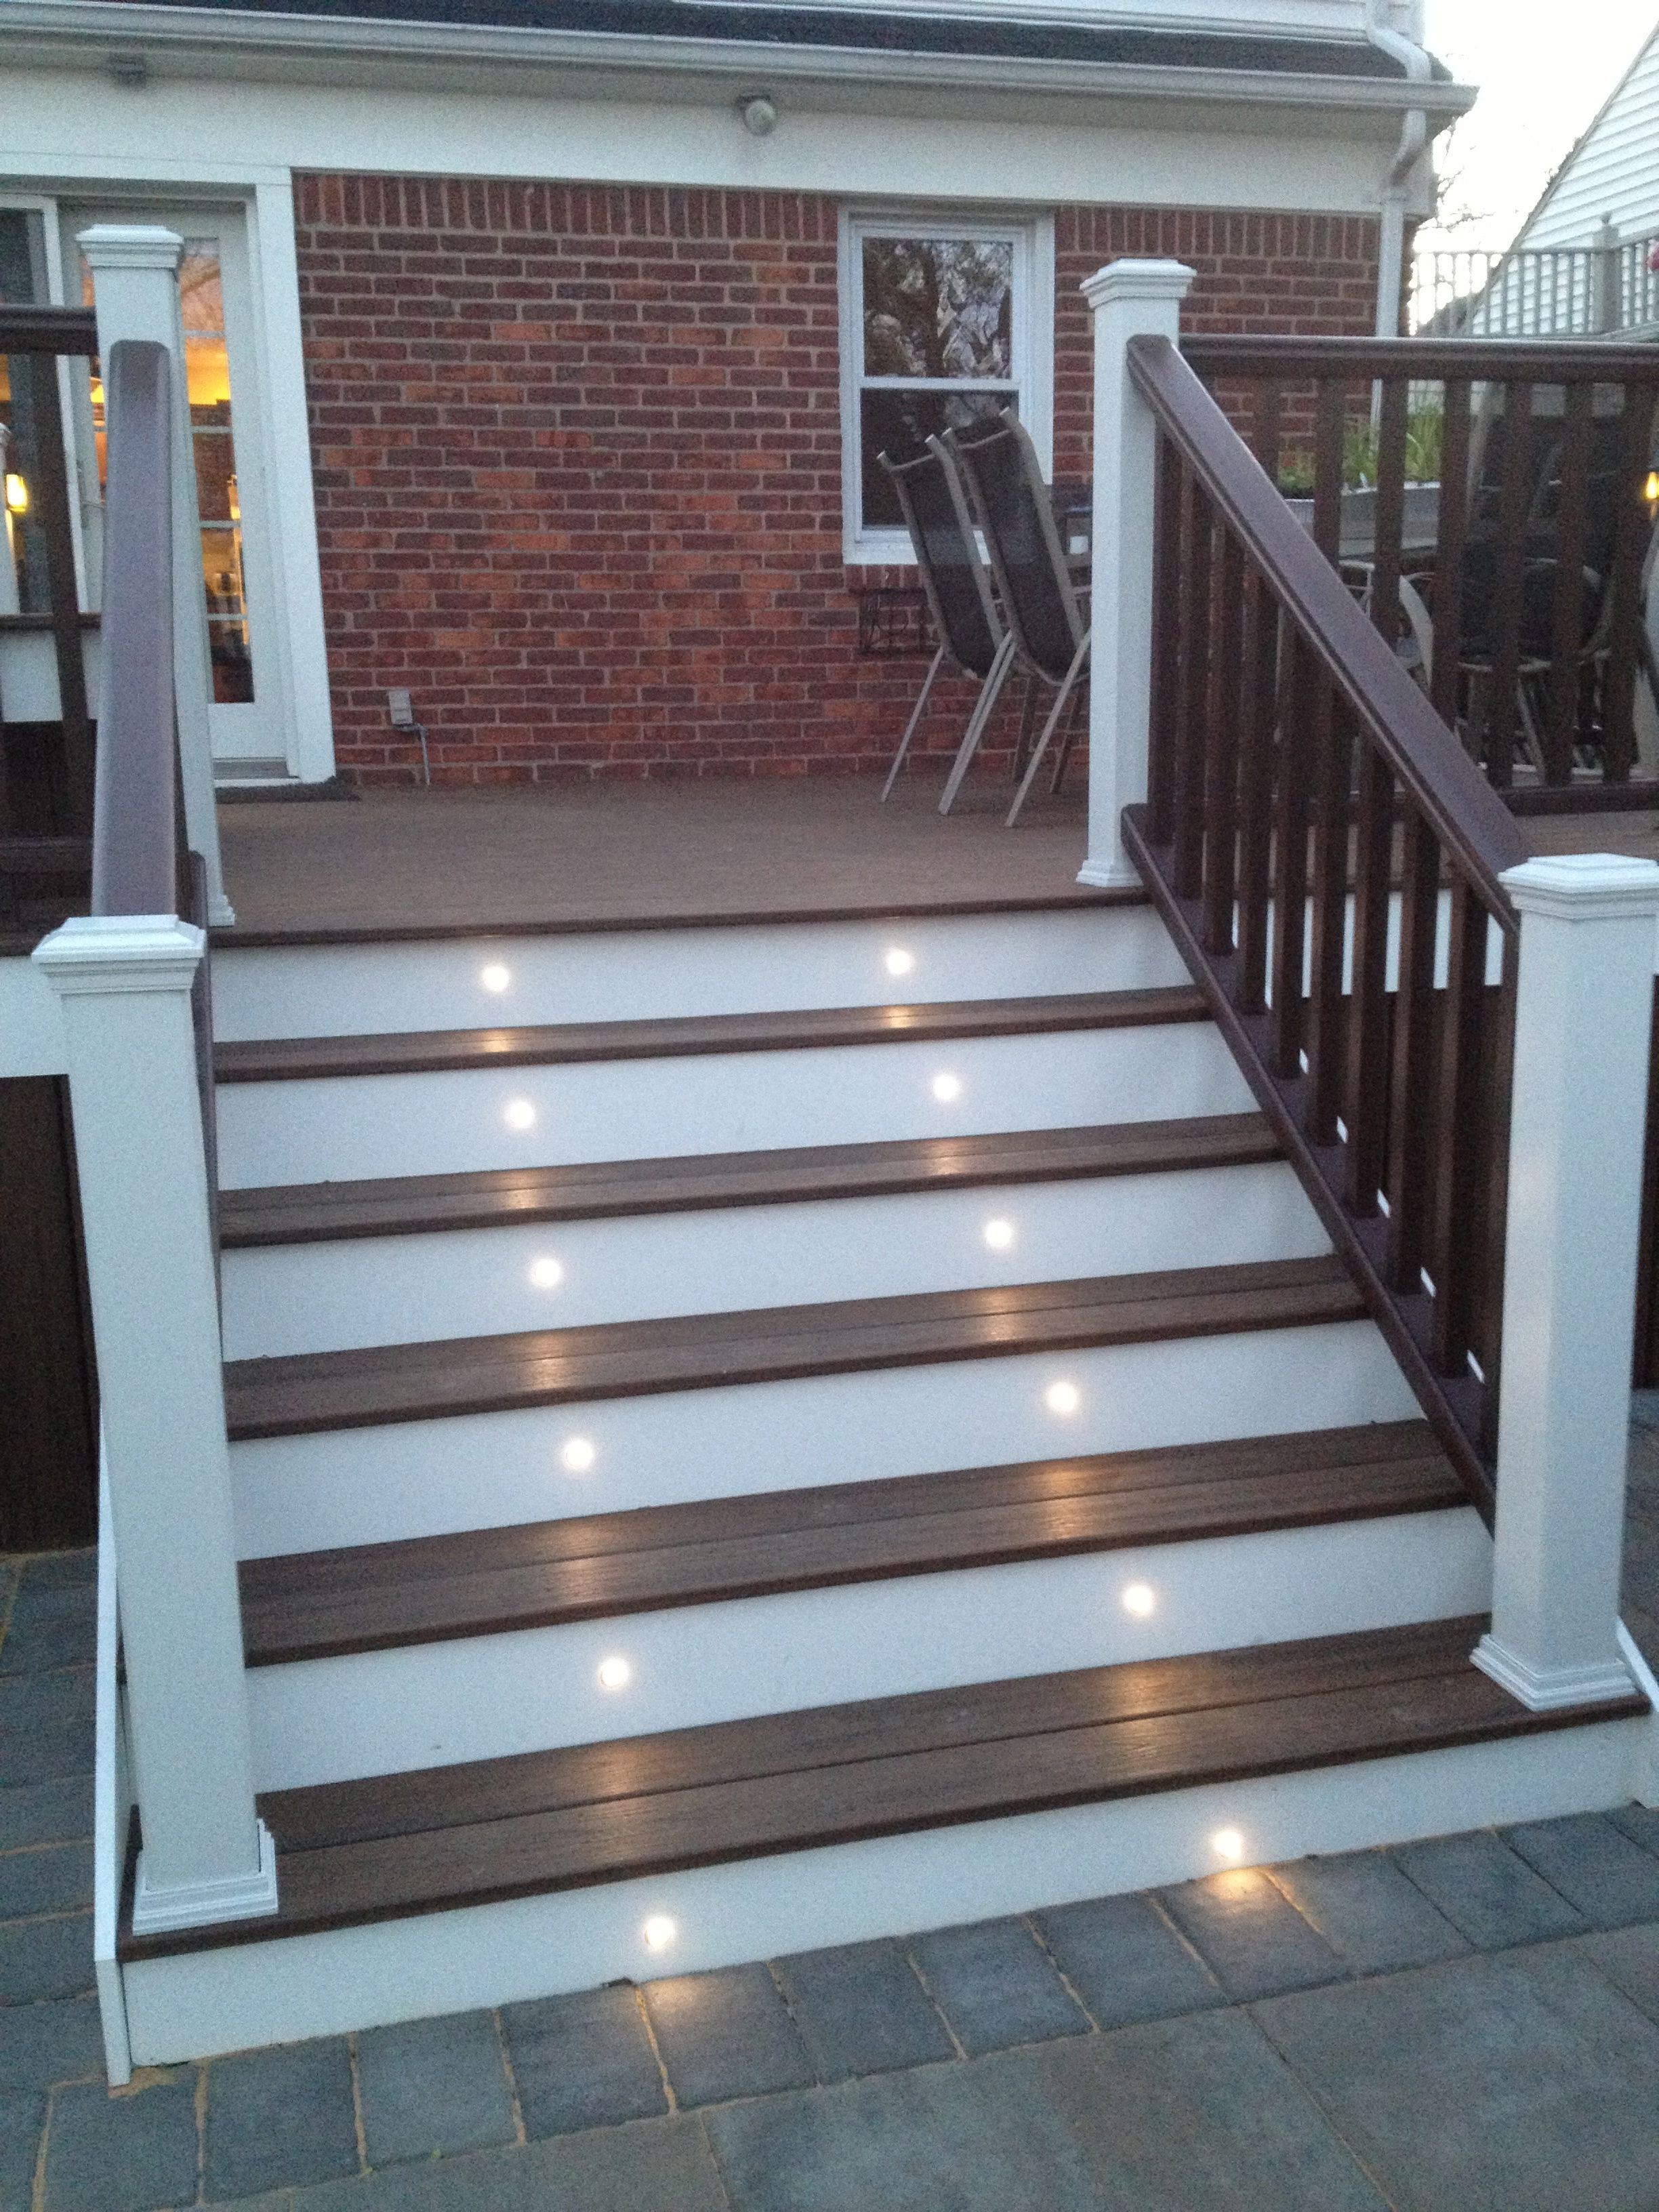 Best 21 Totally Bright Patio Deck Trex To Get A Luxurious 400 x 300